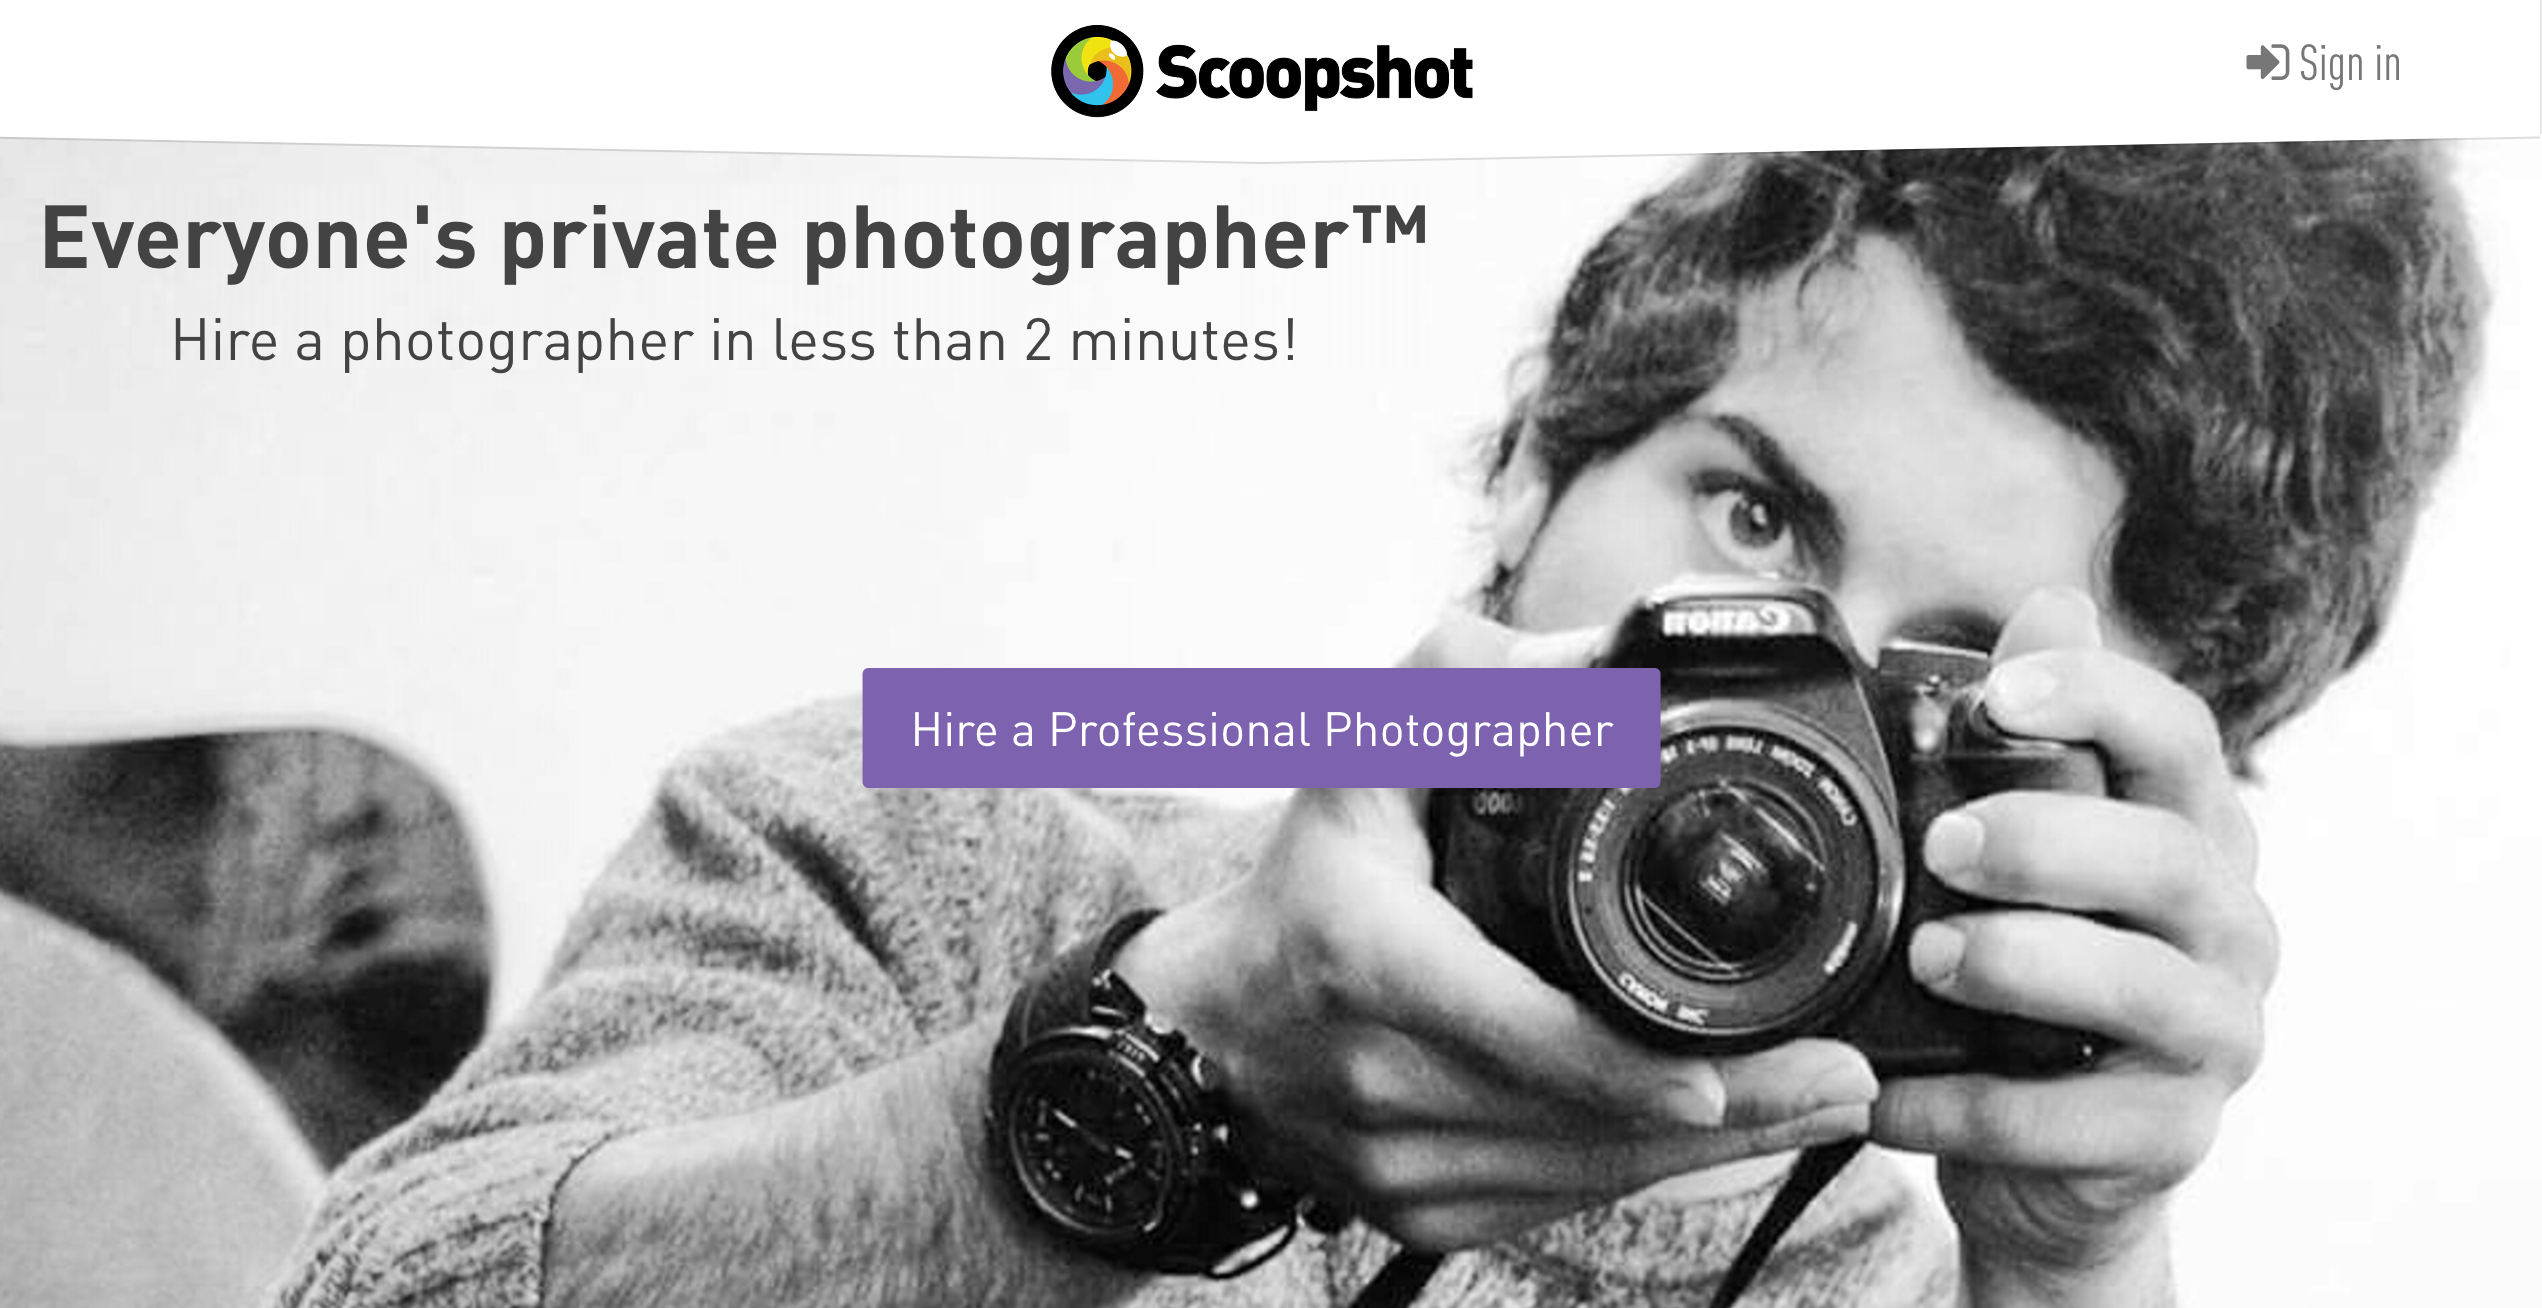 scoopshot-hire-photographer-sell-photographs